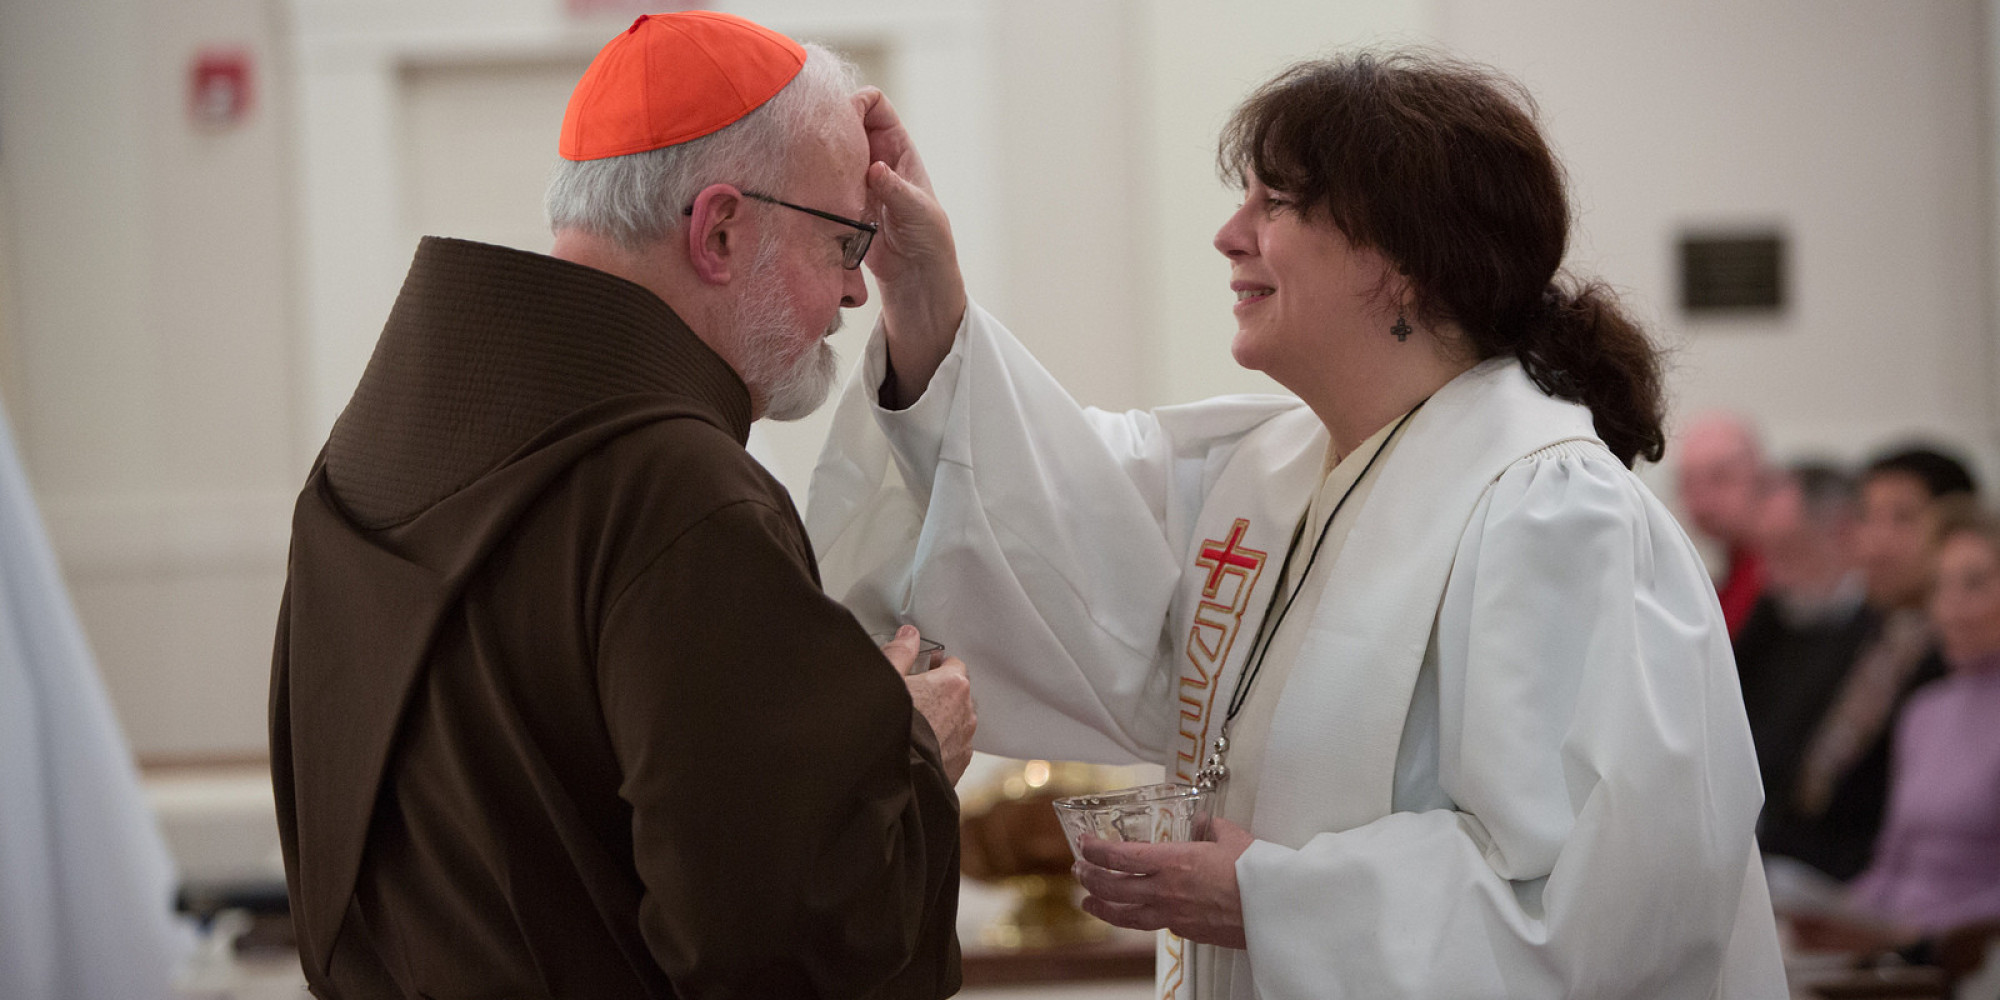 Image result for cardinal o',malley blessing woman bishop